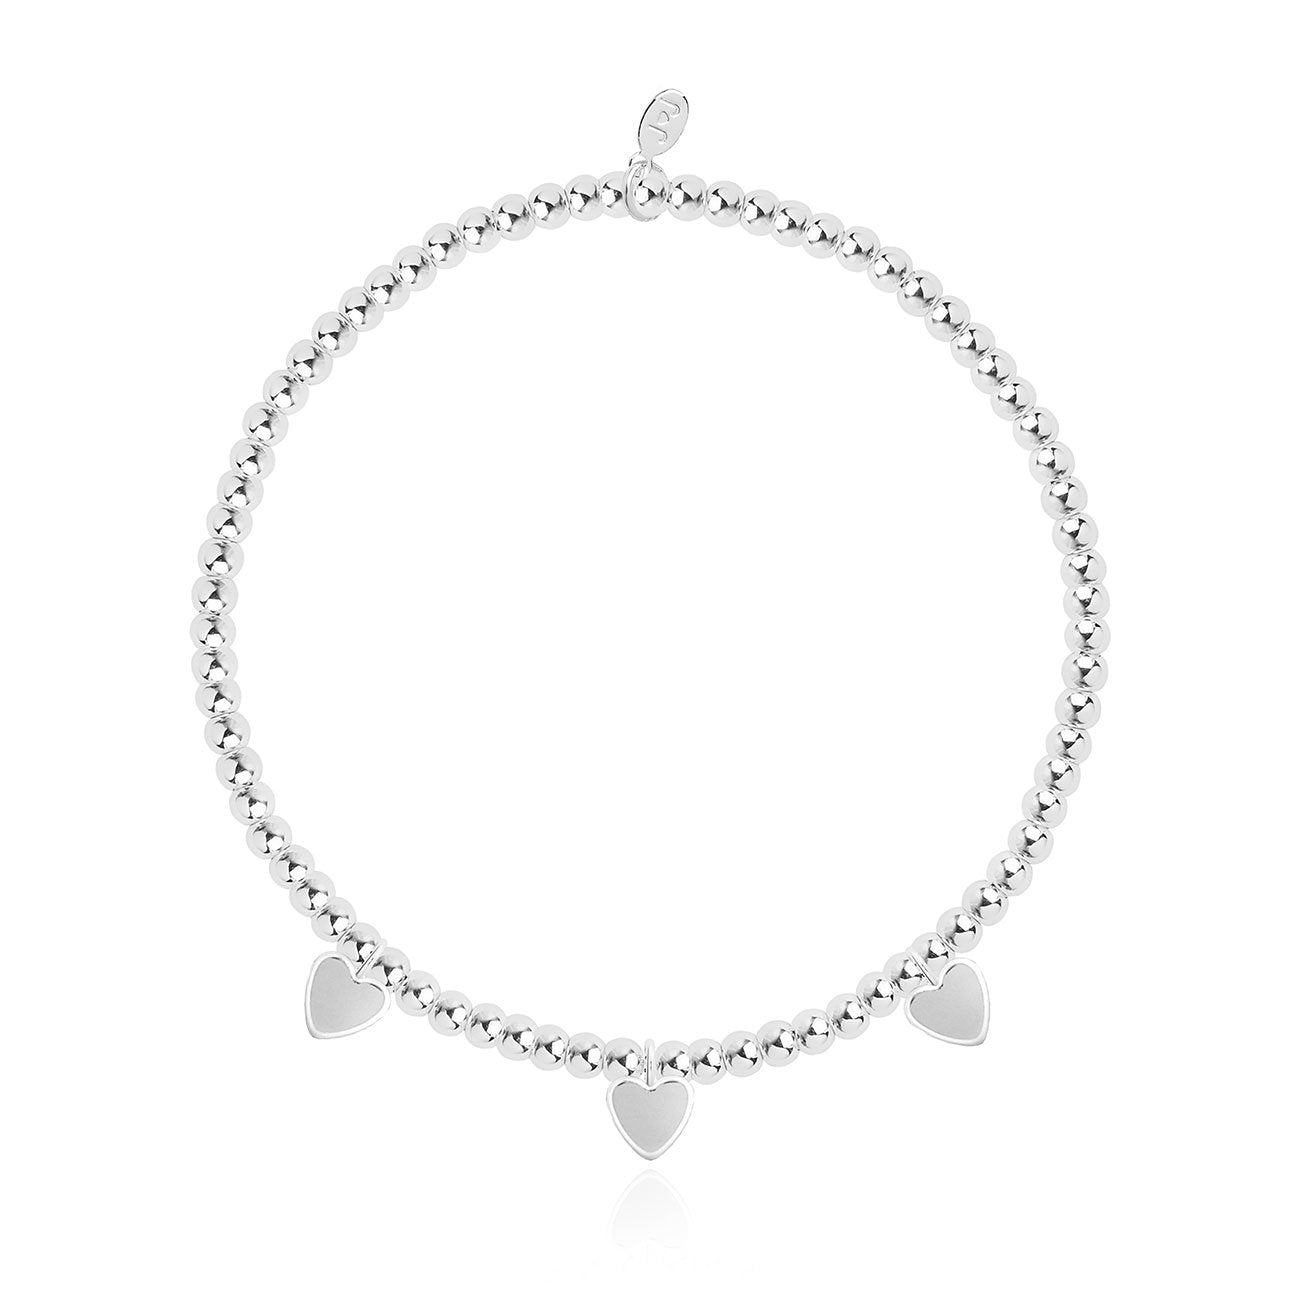 With Love Triple Bracelet Gift Box Joma Jewellery